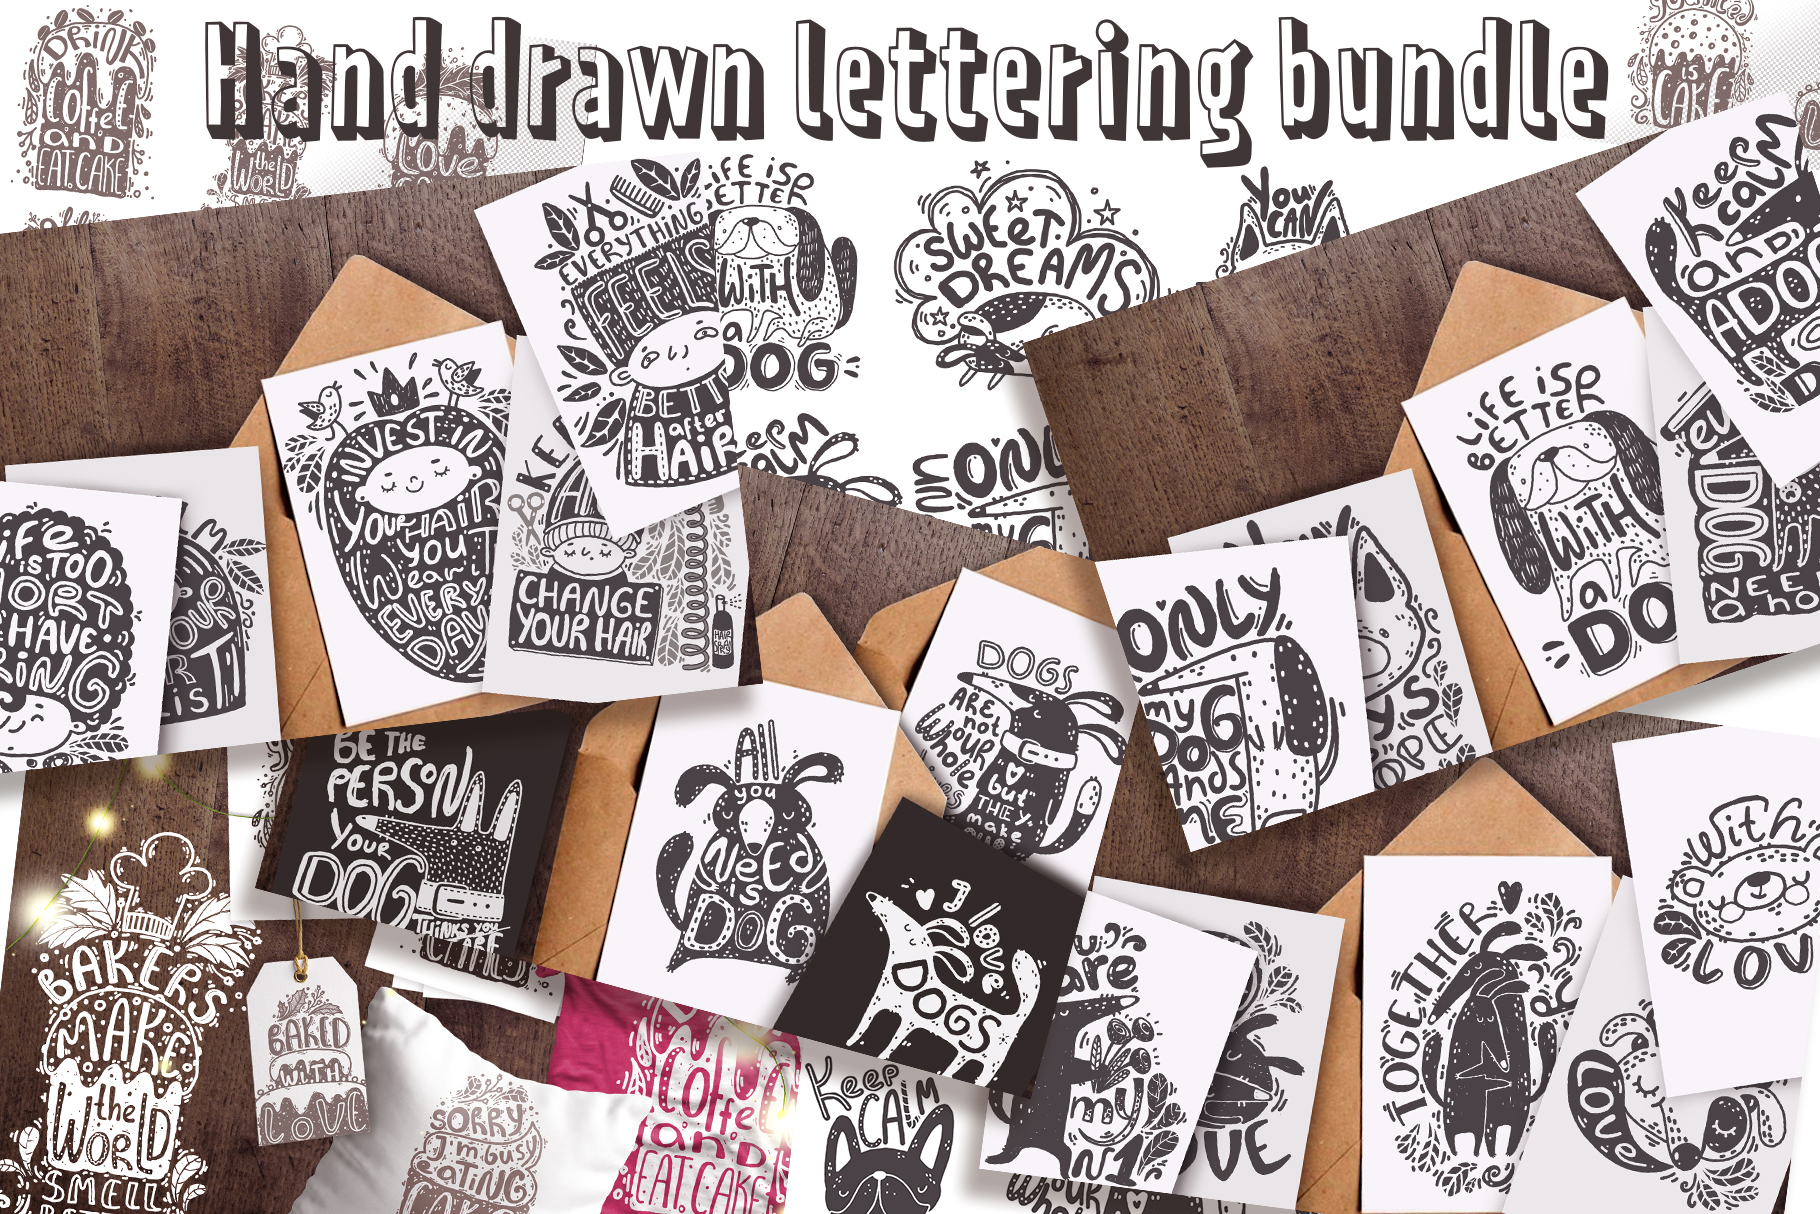 Hand drawn lettering bundle example image 1